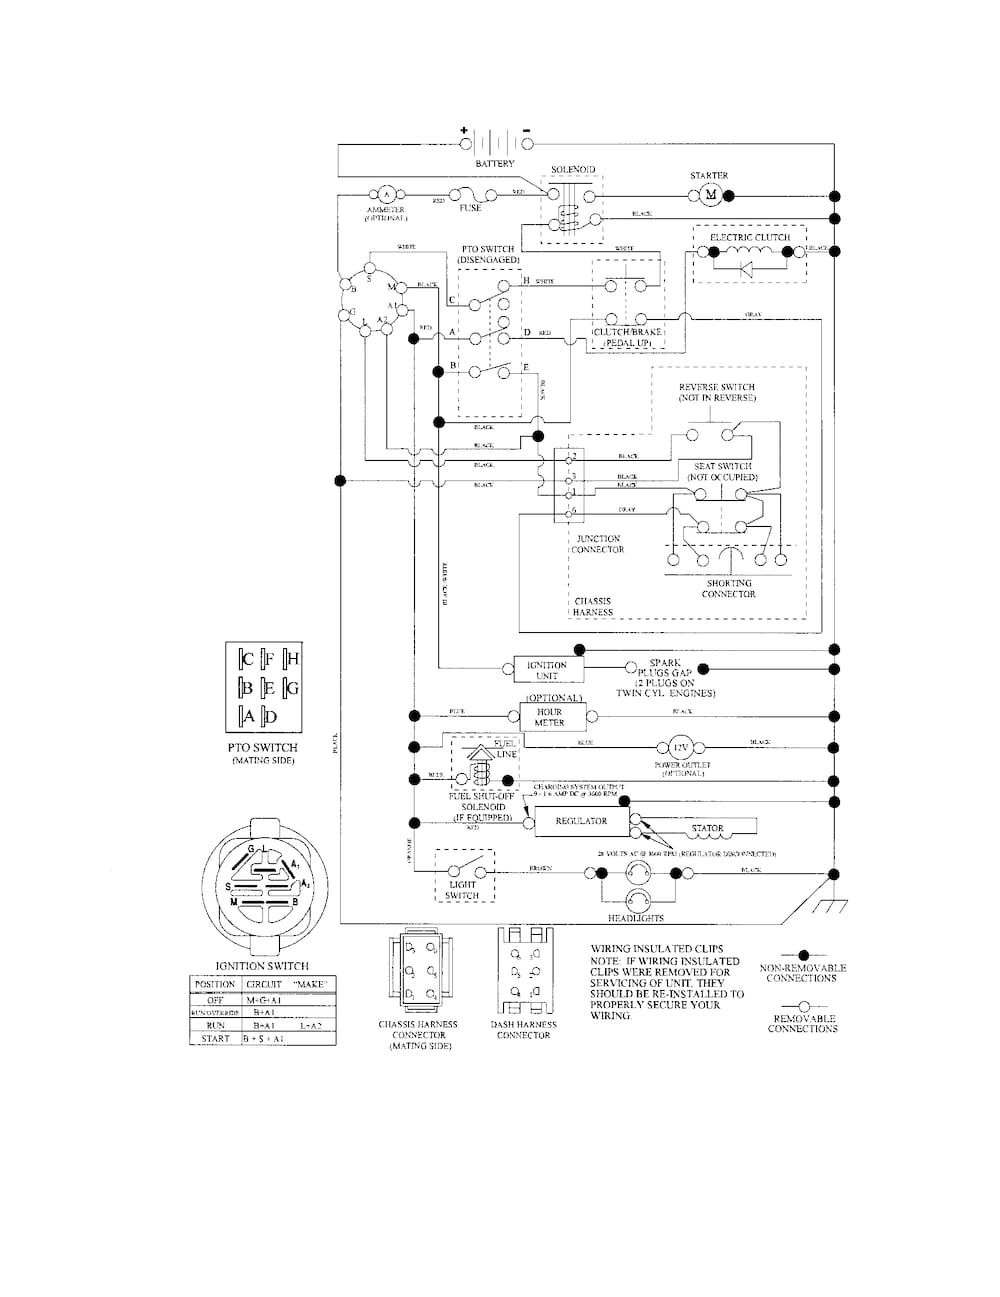 Power King 1614 Tractor Wiring Diagram Improve Wiring Diagram \u2022 Bolens  Riding Lawn Mower Wiring Diagram Power King Tractor Wiring Diagram